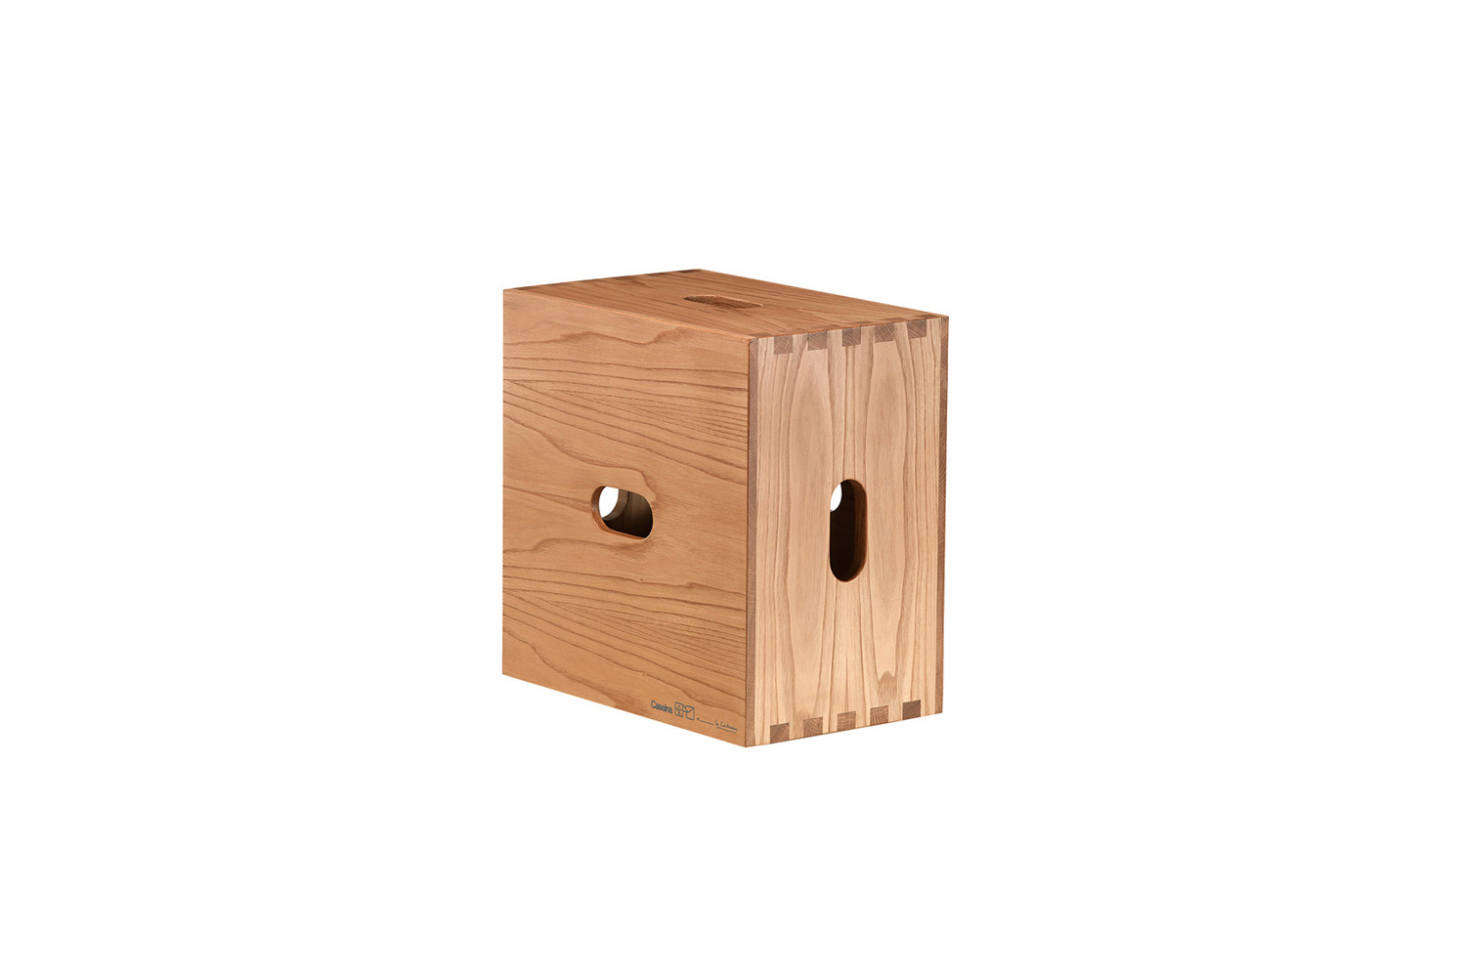 On the higher end of the spectrum, the Le Corbusier-designed LC Stool for Cassina is a take on the classic apple box but can be handled from two sides; £58